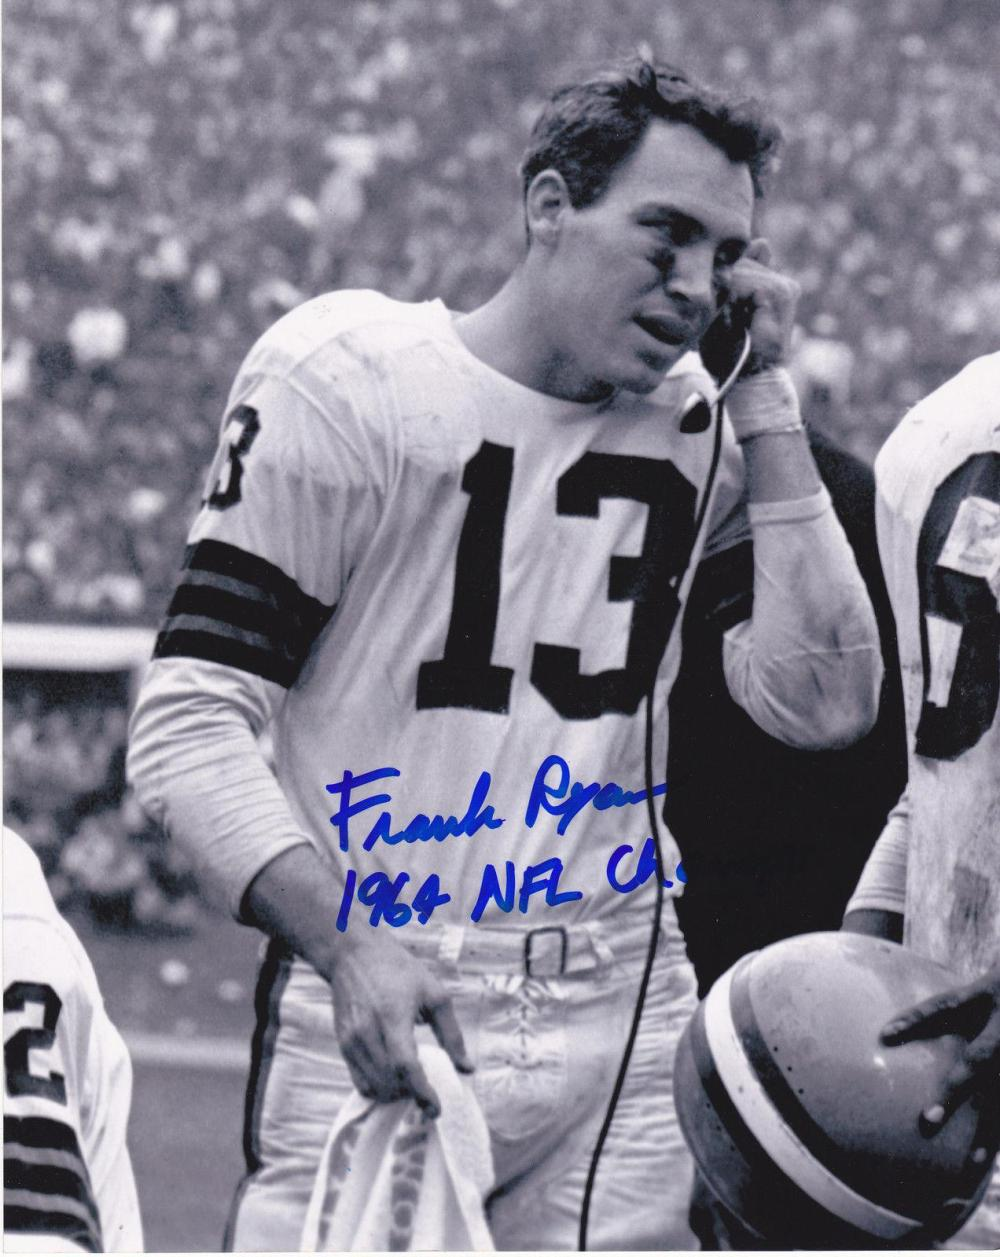 frank-ryan-cleveland-browns-1964-nfl-champs-action-signed-8x1027-t7462703-1600